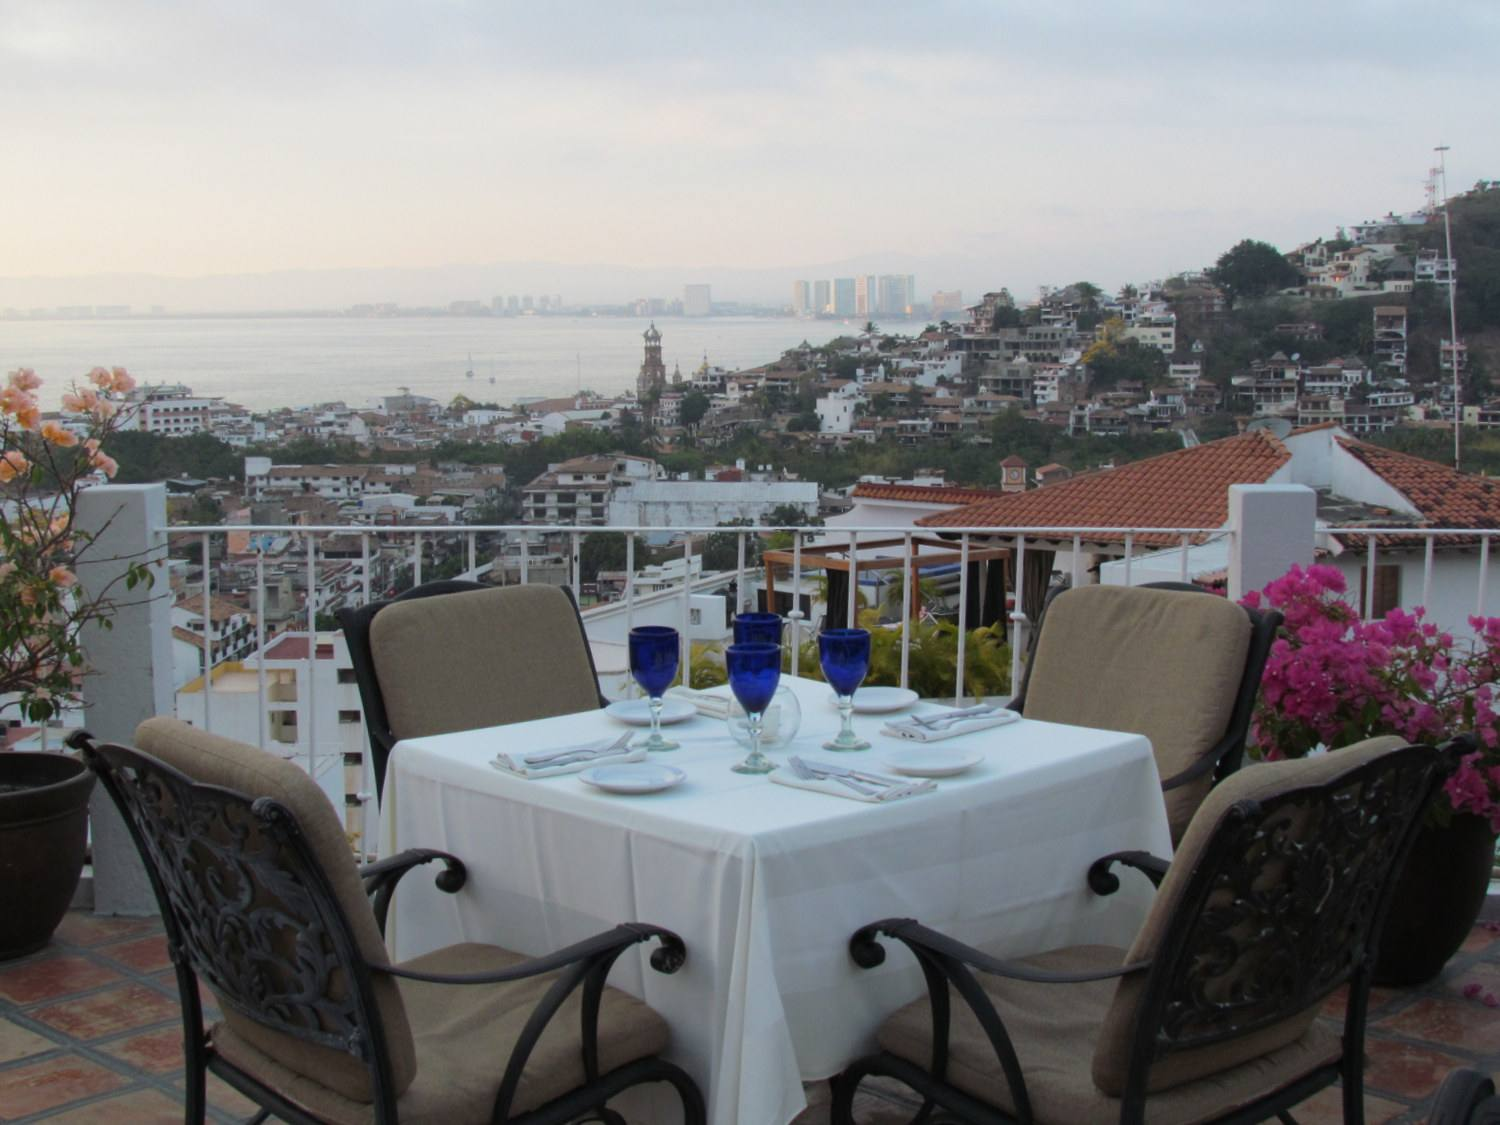 Dining with a view in Puerto Vallarta